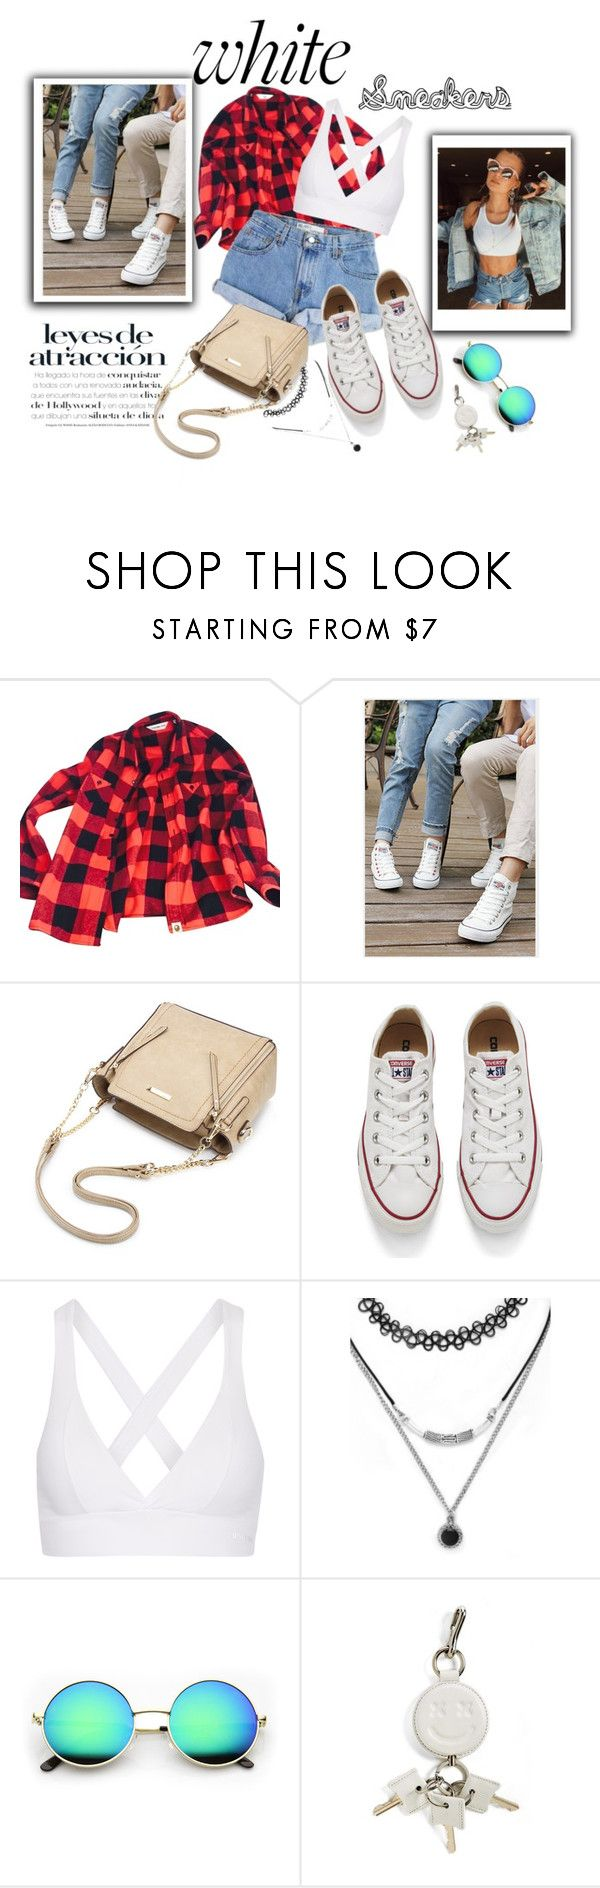 """""""White Sneakers"""" by smajicelma ❤ liked on Polyvore featuring A BATHING APE, Levi's, Renben, Converse, Bodyism, Forever 21 and Alexander Wang"""